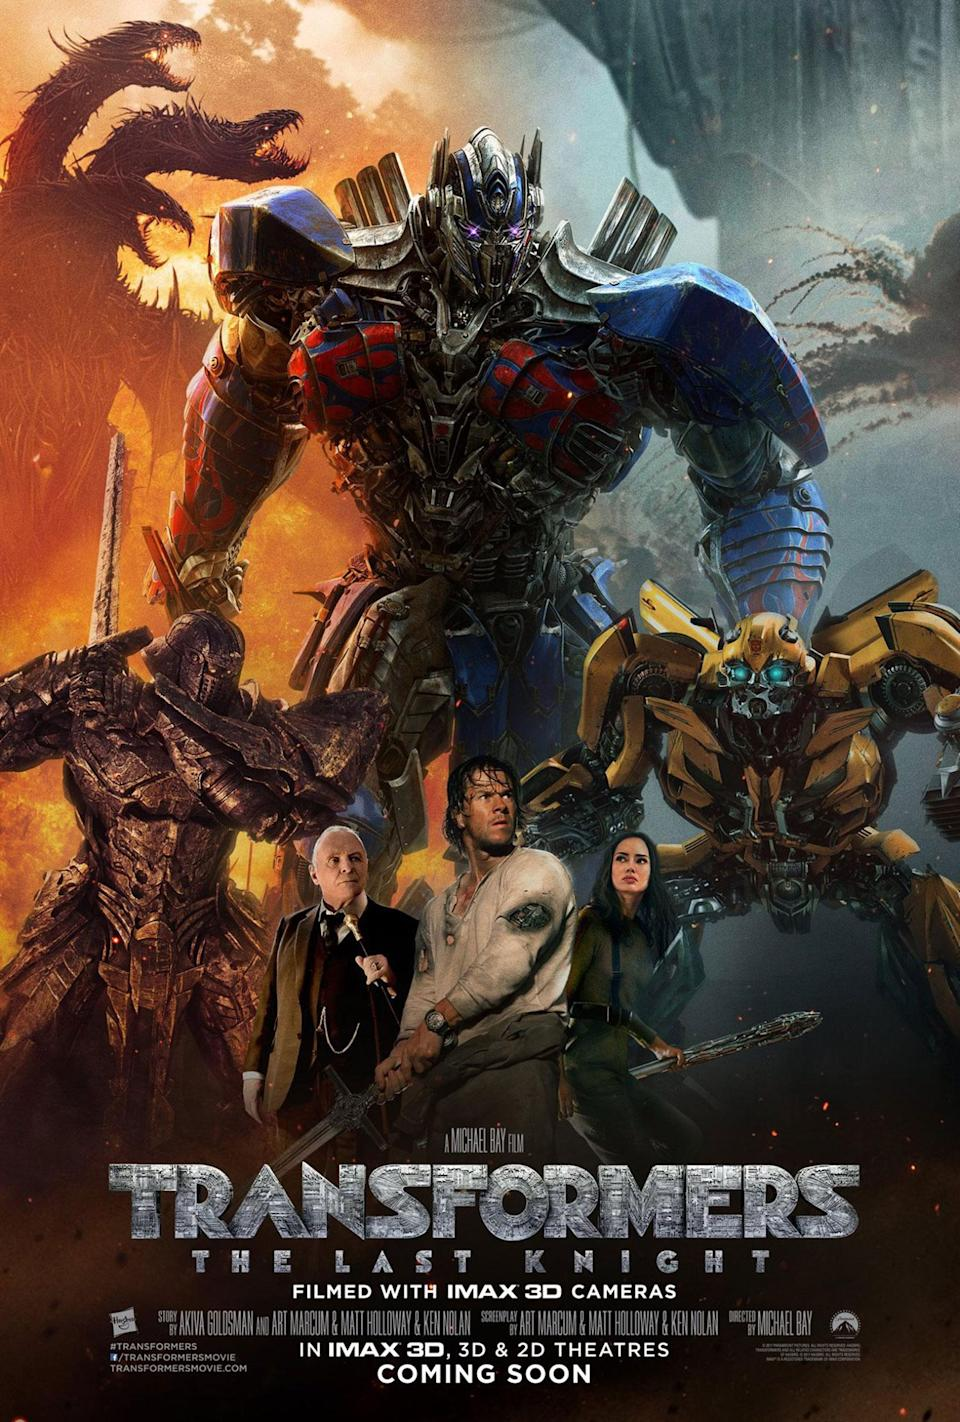 <p>Michael Bay directs posters the same way he directs movies: more robots, more weapons, more explosions… and put a dragon on it! If you had to politely describe this poster to someone, you would say 'There's definitely a lot going on', then you would quickly change the subject, because looking at it for long periods of time will make you go blind. </p>